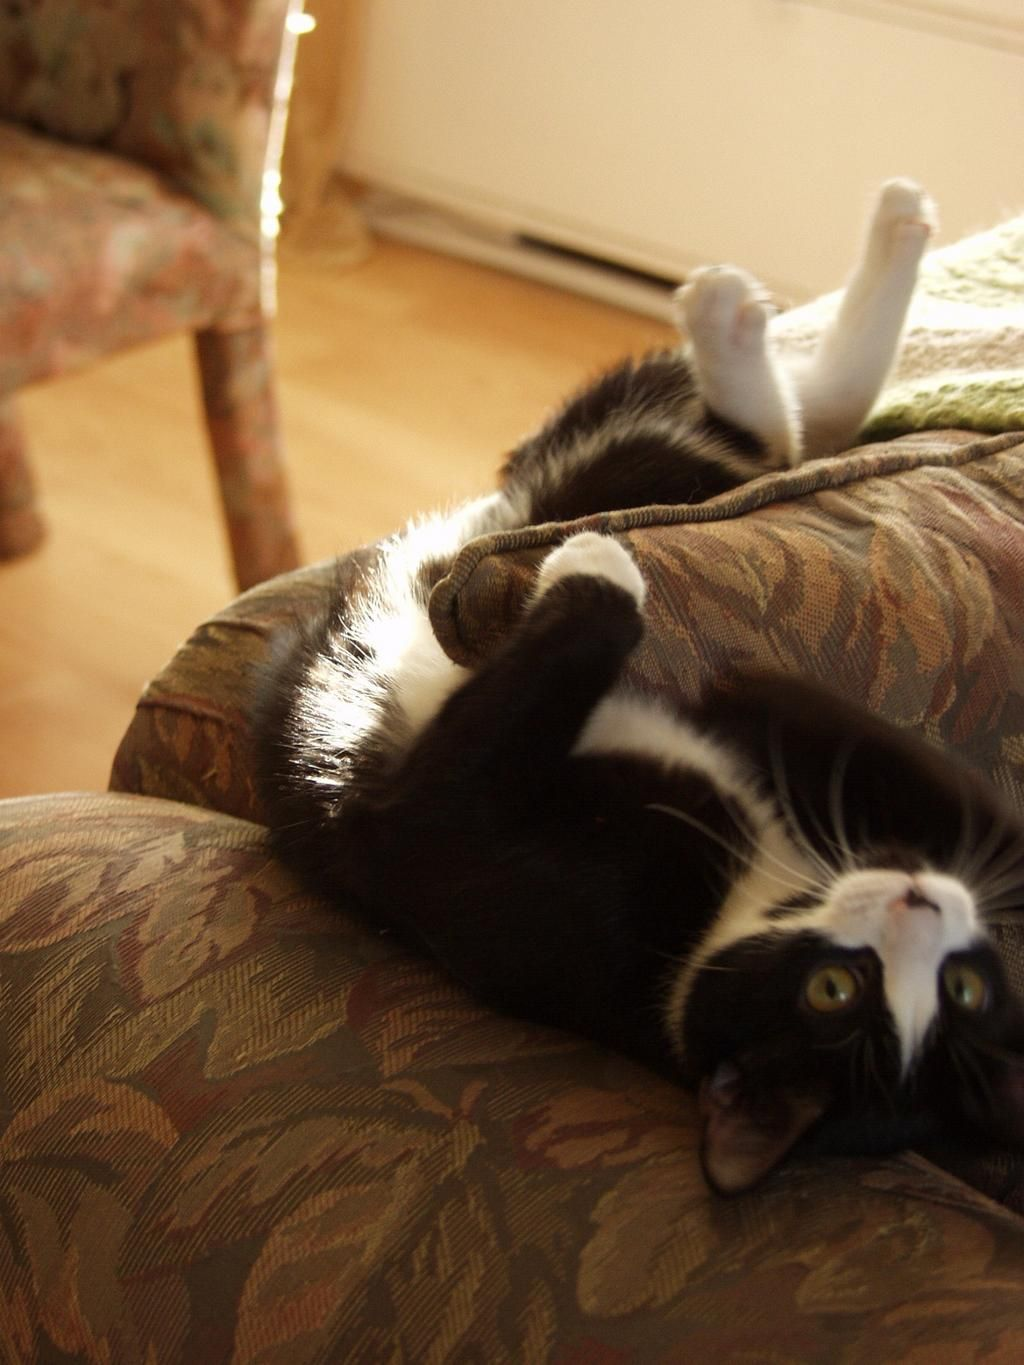 #jellybellyfriday - today I'm celebrating upside down! pic.twitter.com/4p0rn14uf9